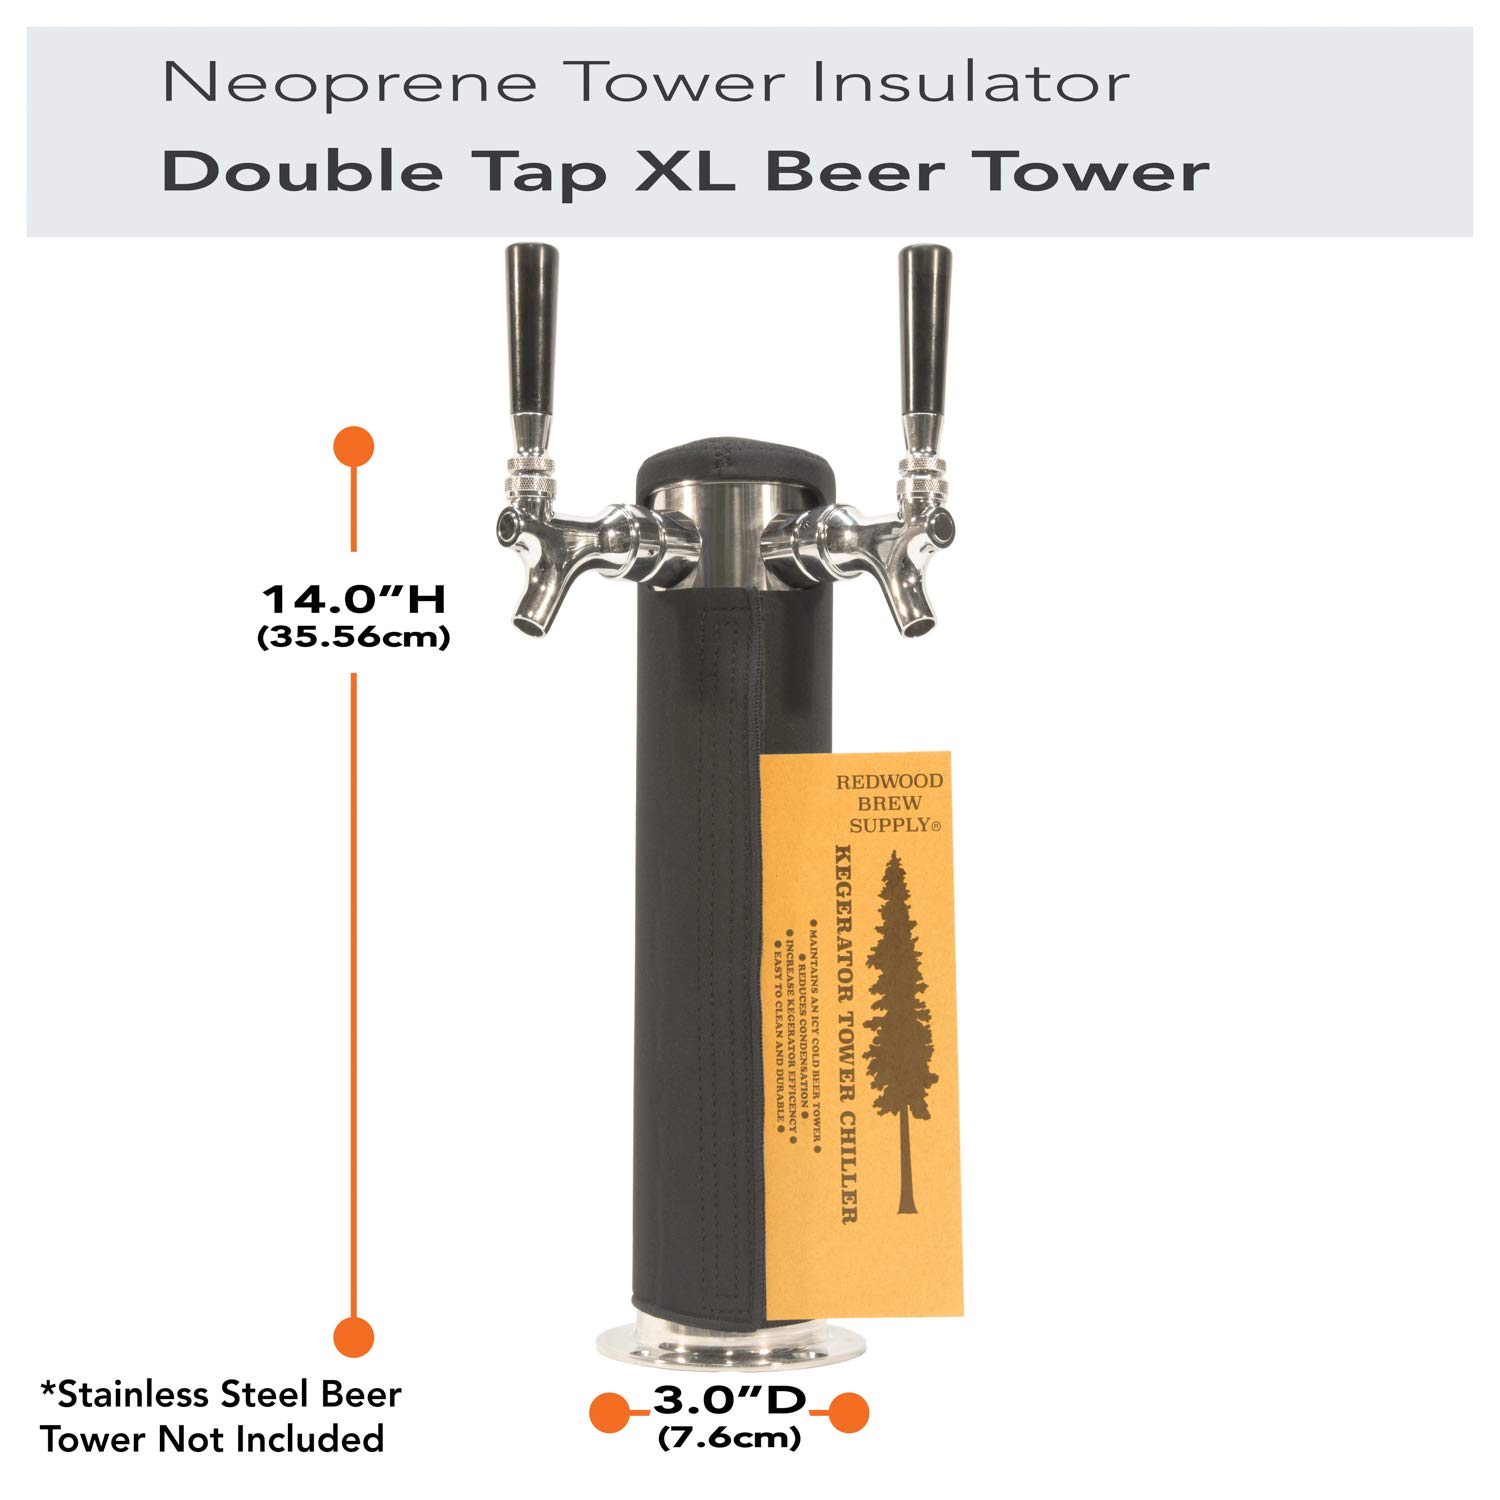 Amazon.com: Kegerator Tower Cooler Insulator XL for Beer Tap Towers by Redwood Brew Supply (3.0